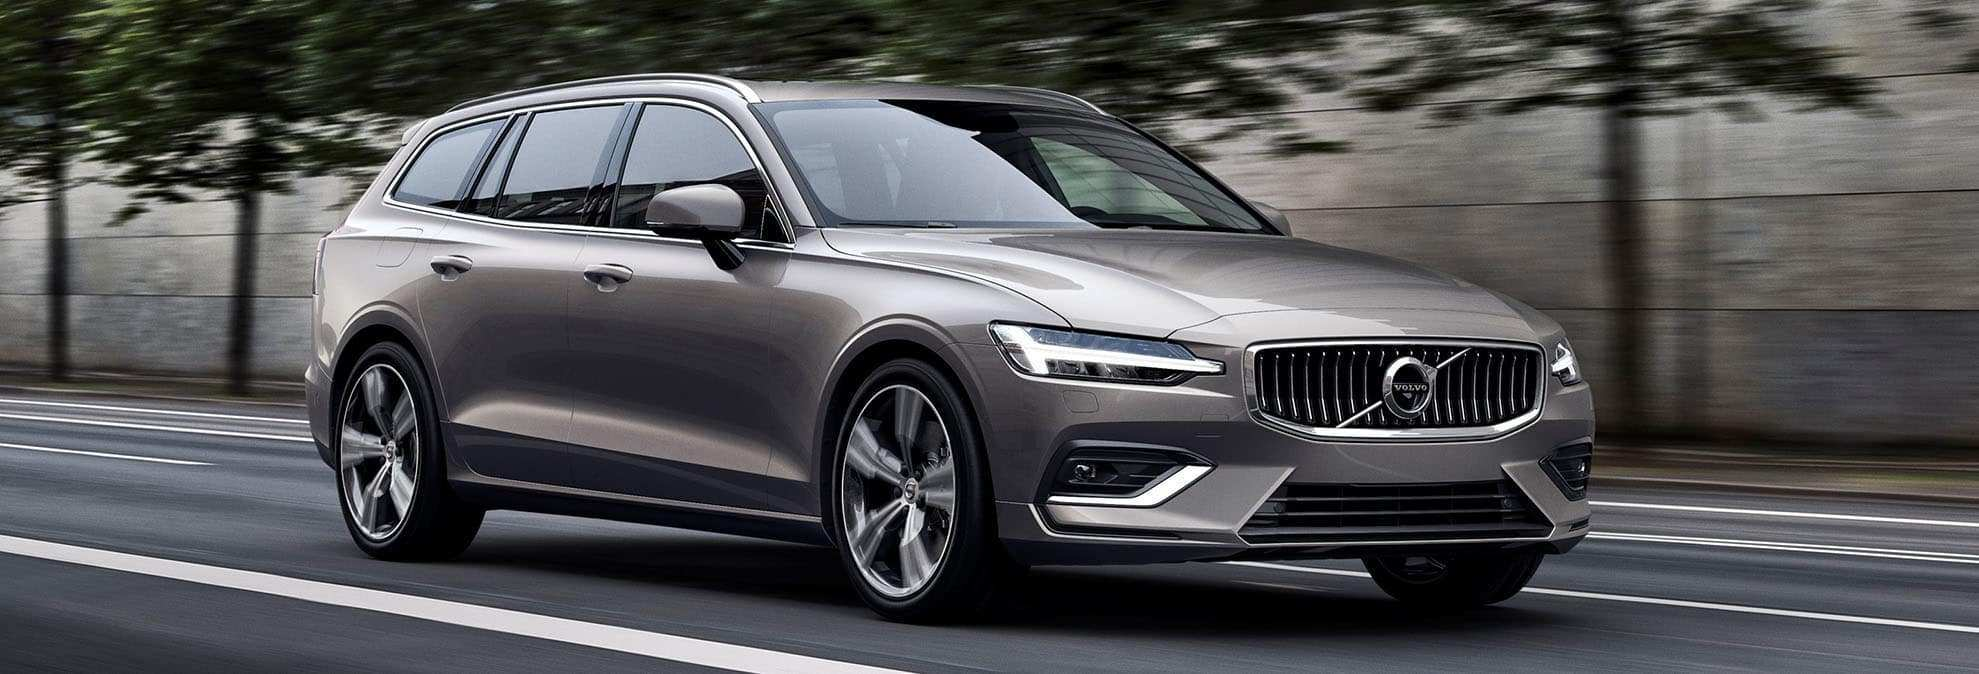 49 The Best 2019 Volvo Wagon Rumors